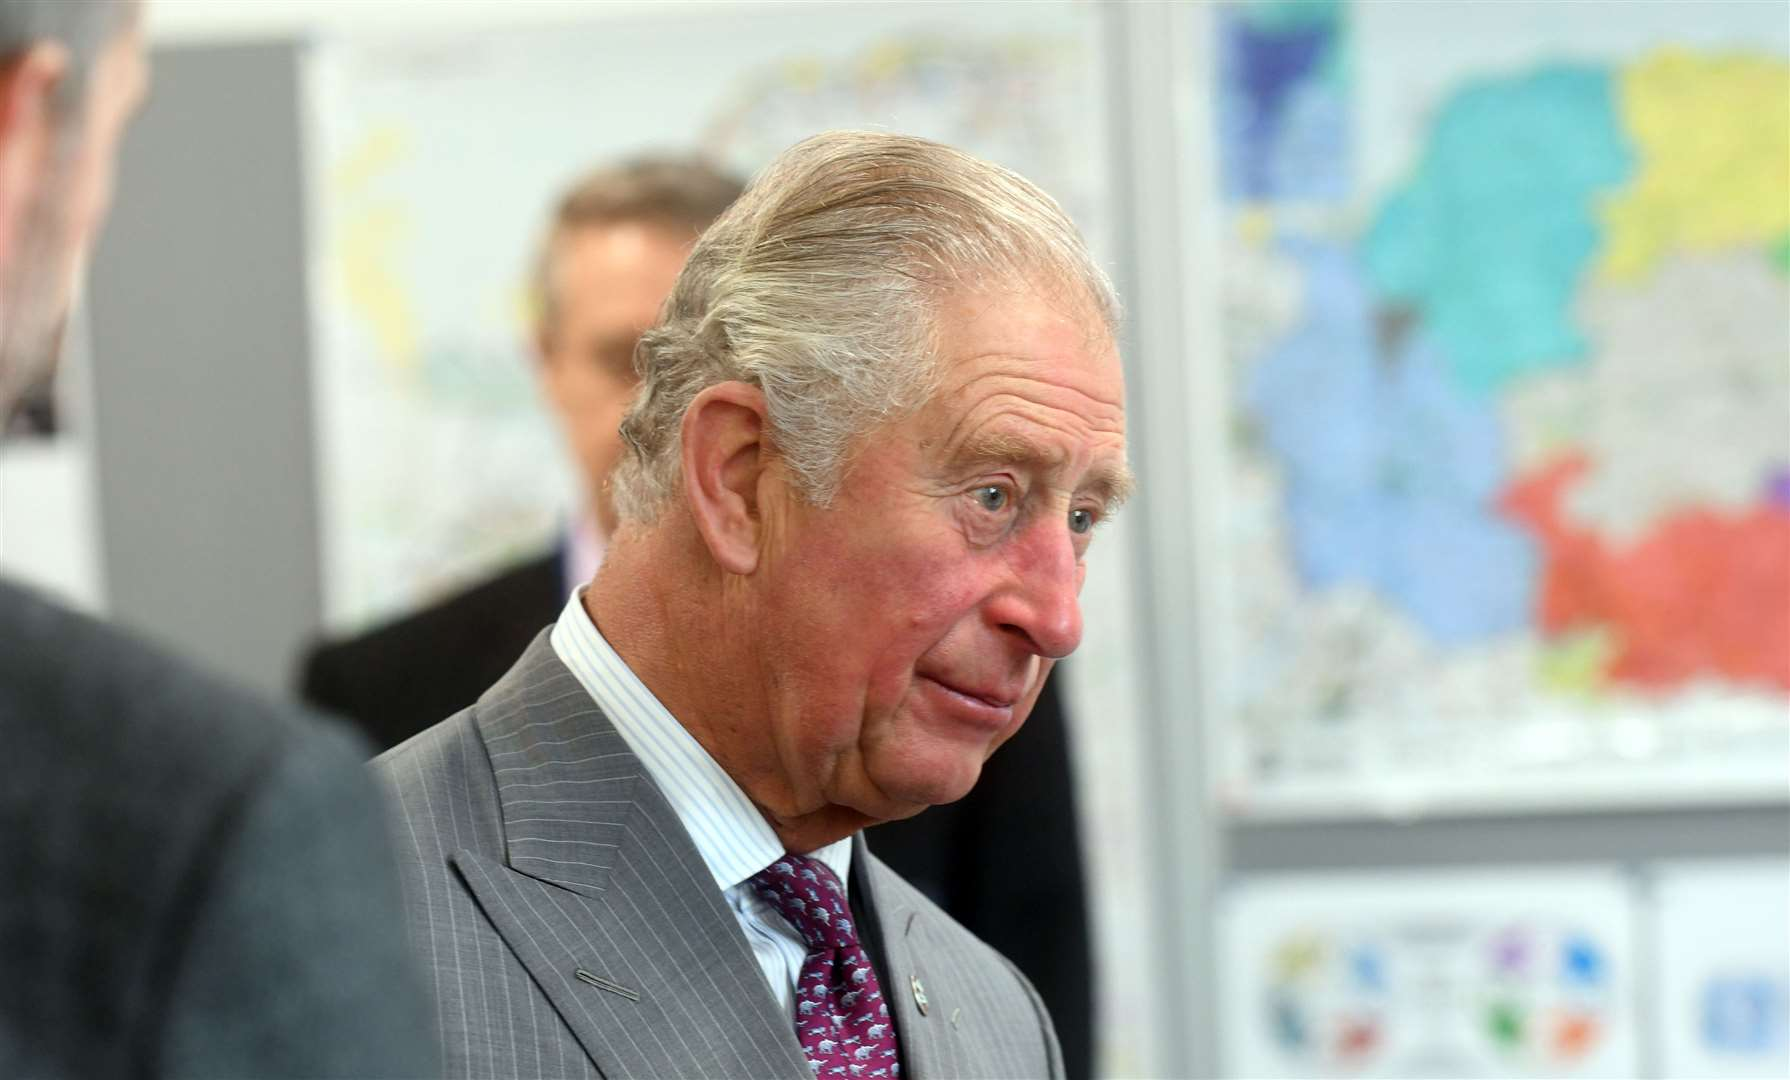 Prince Charles is patron to the Almshouse Association